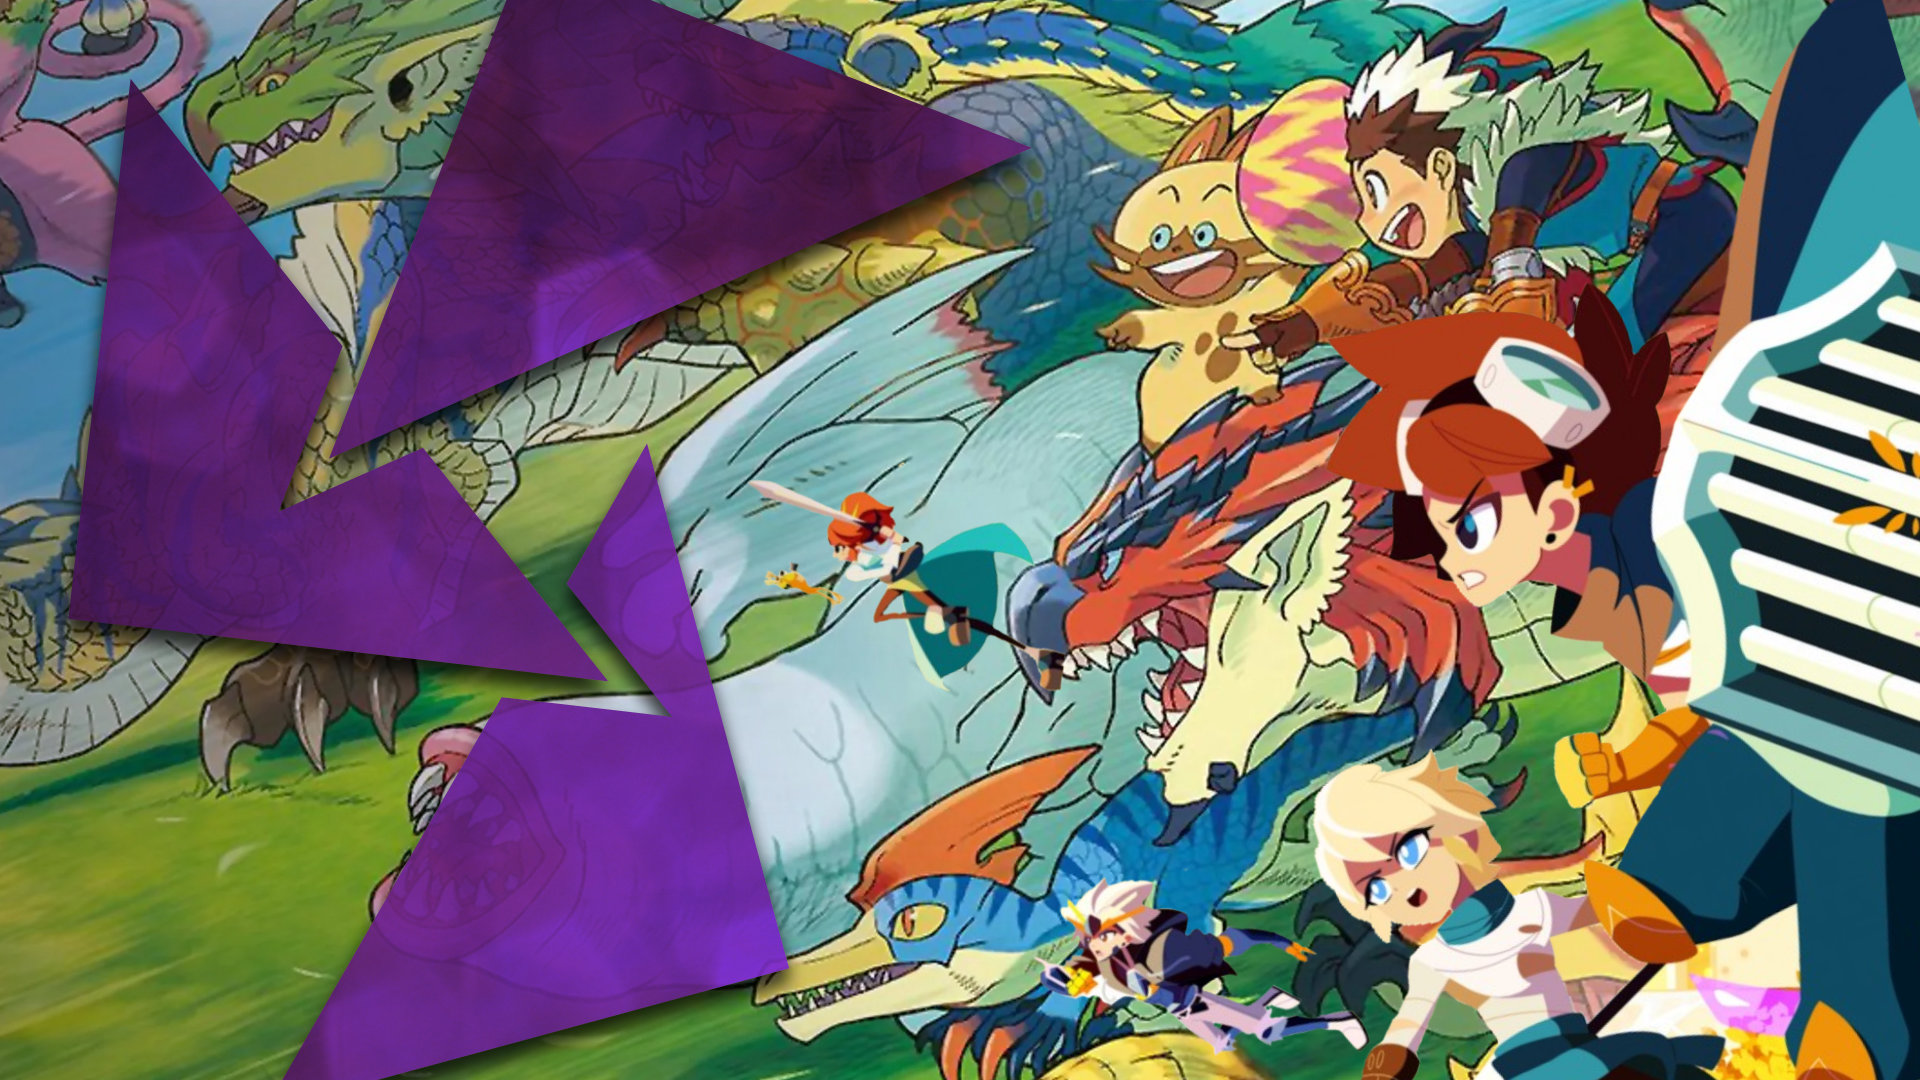 A bevy of Monster Hunter Stories 2 monsters charge ahead alongside characters from the game Cris Tales.